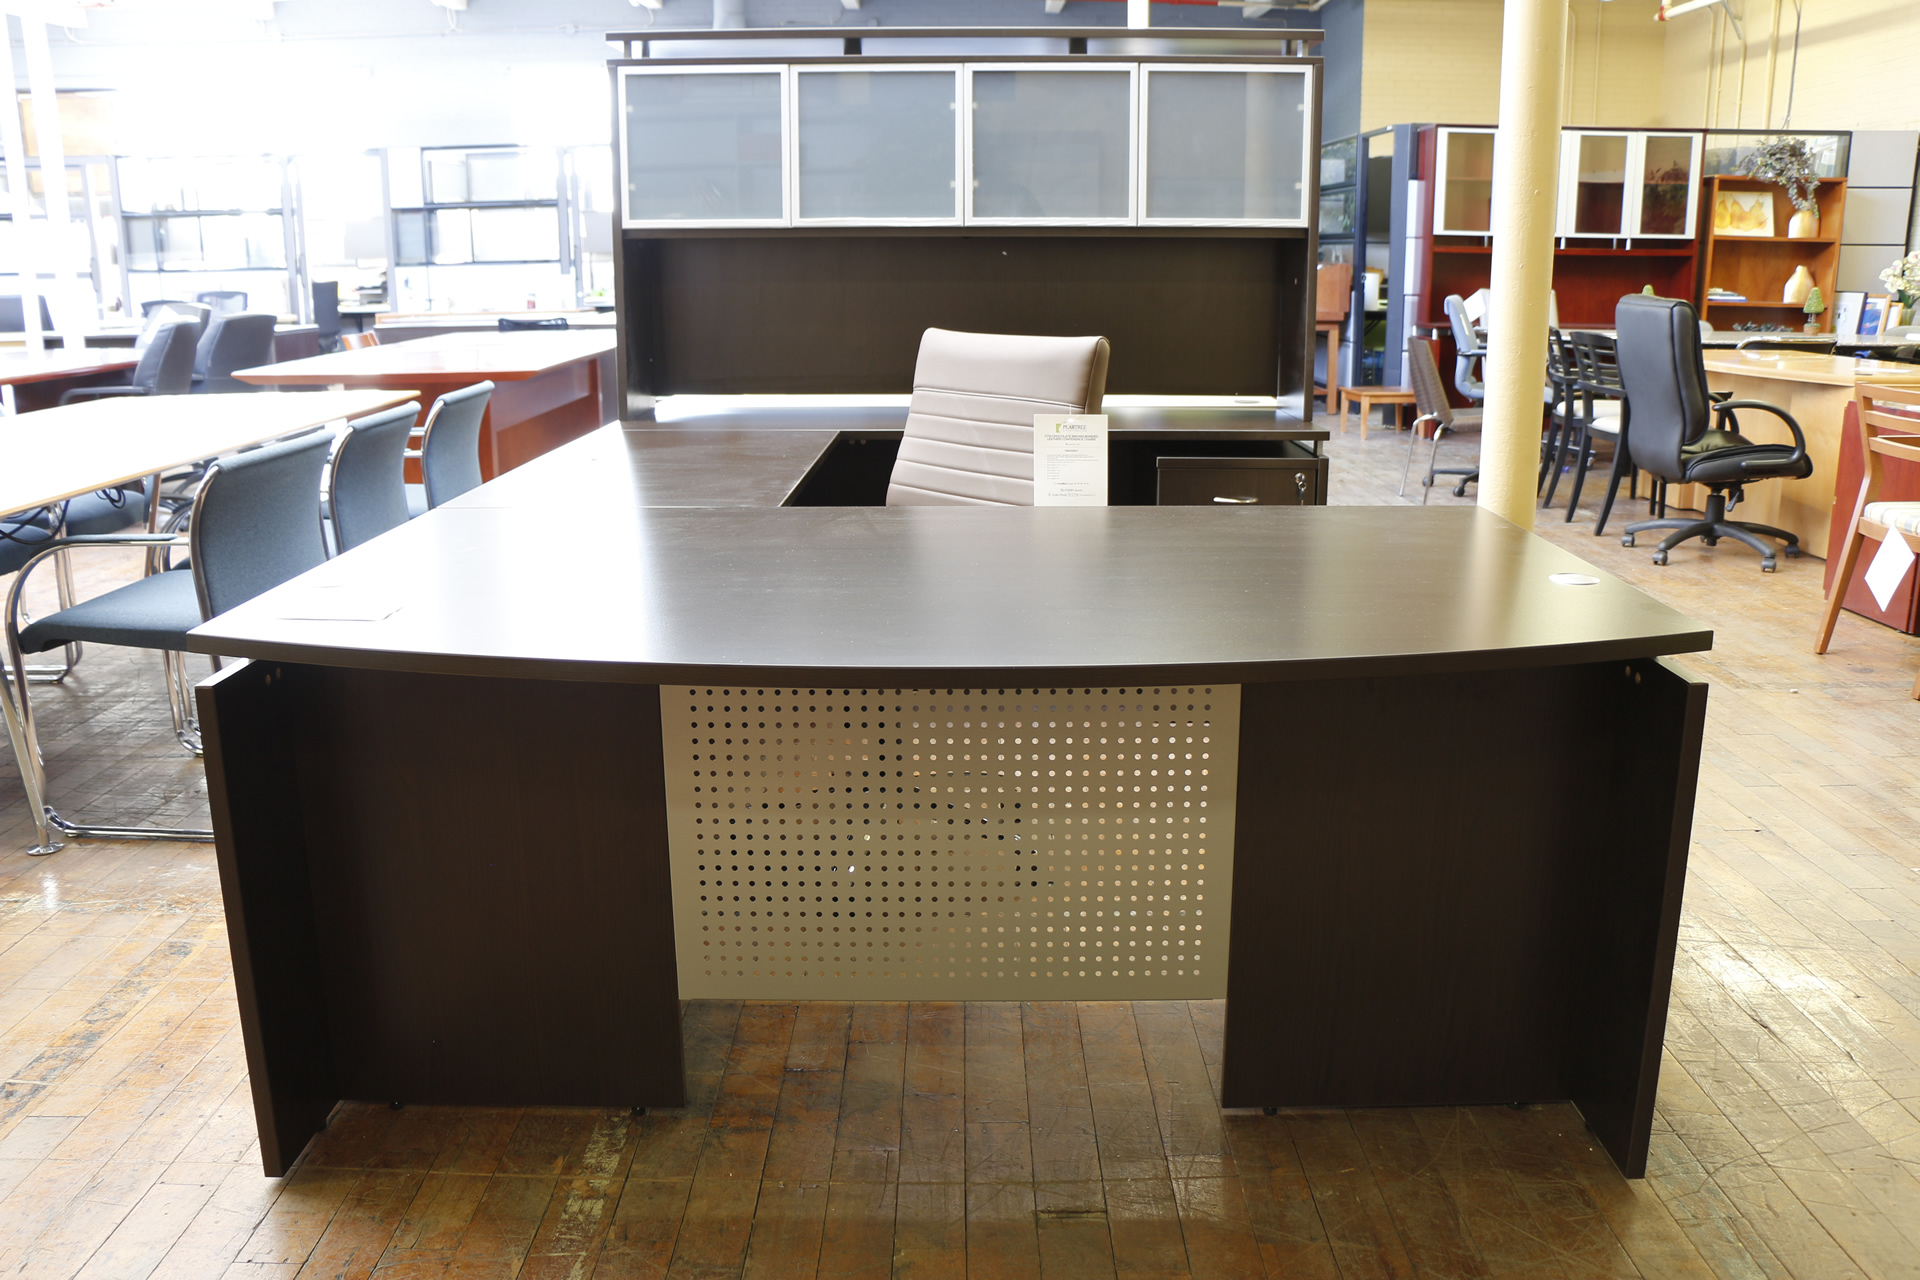 peartreeofficefurniture_peartreeofficefurniture_mg_5056.jpg